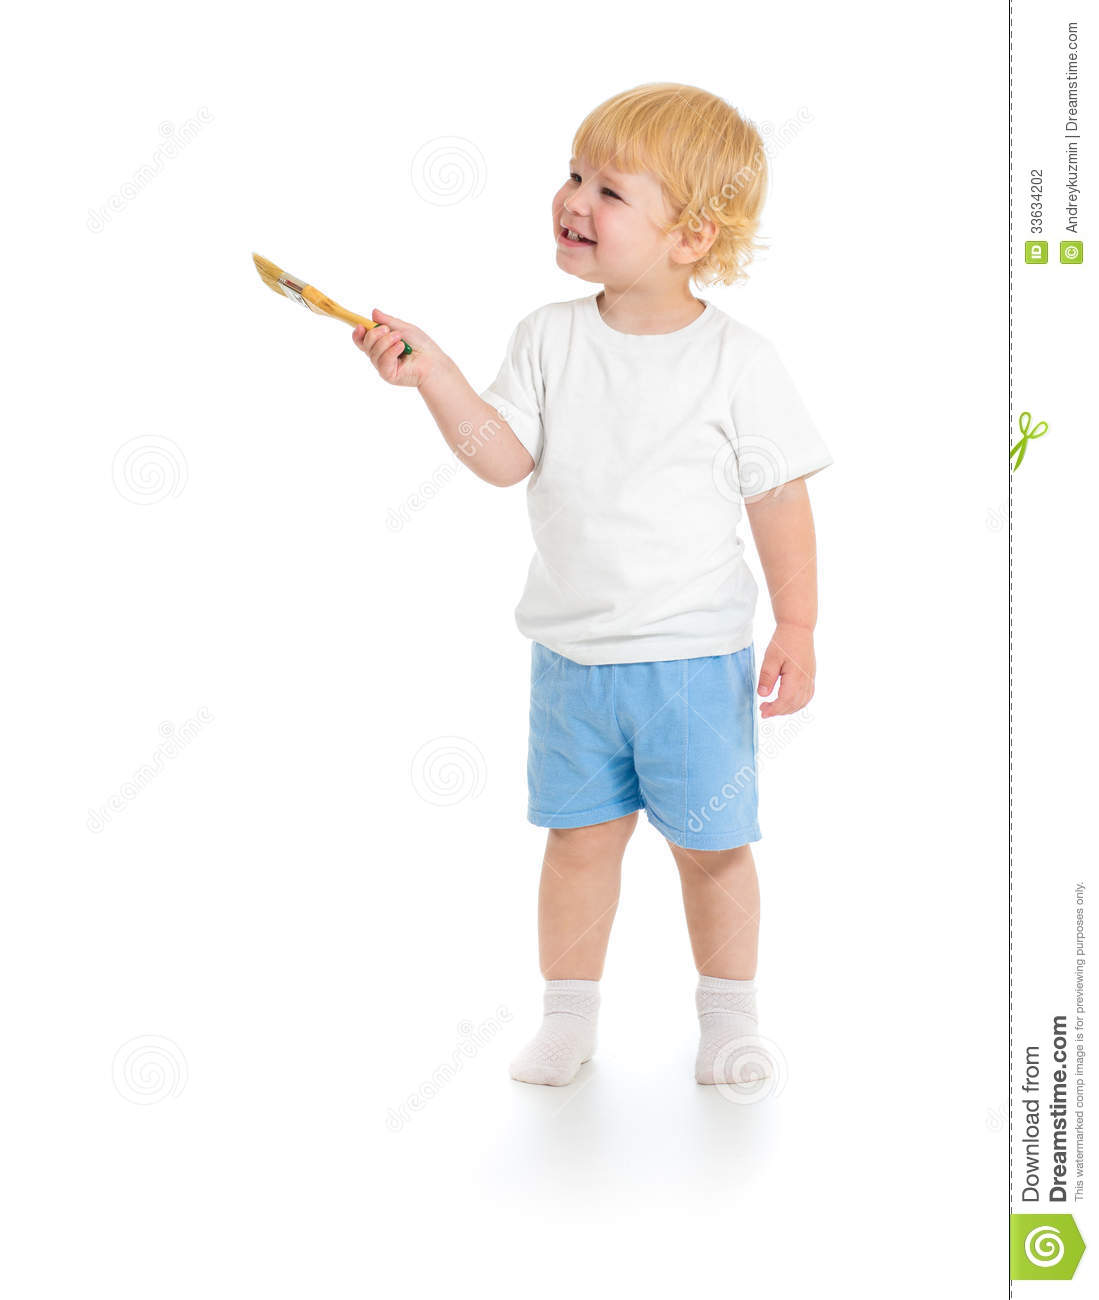 Baby boy with paint brush front view standing full length isolated on